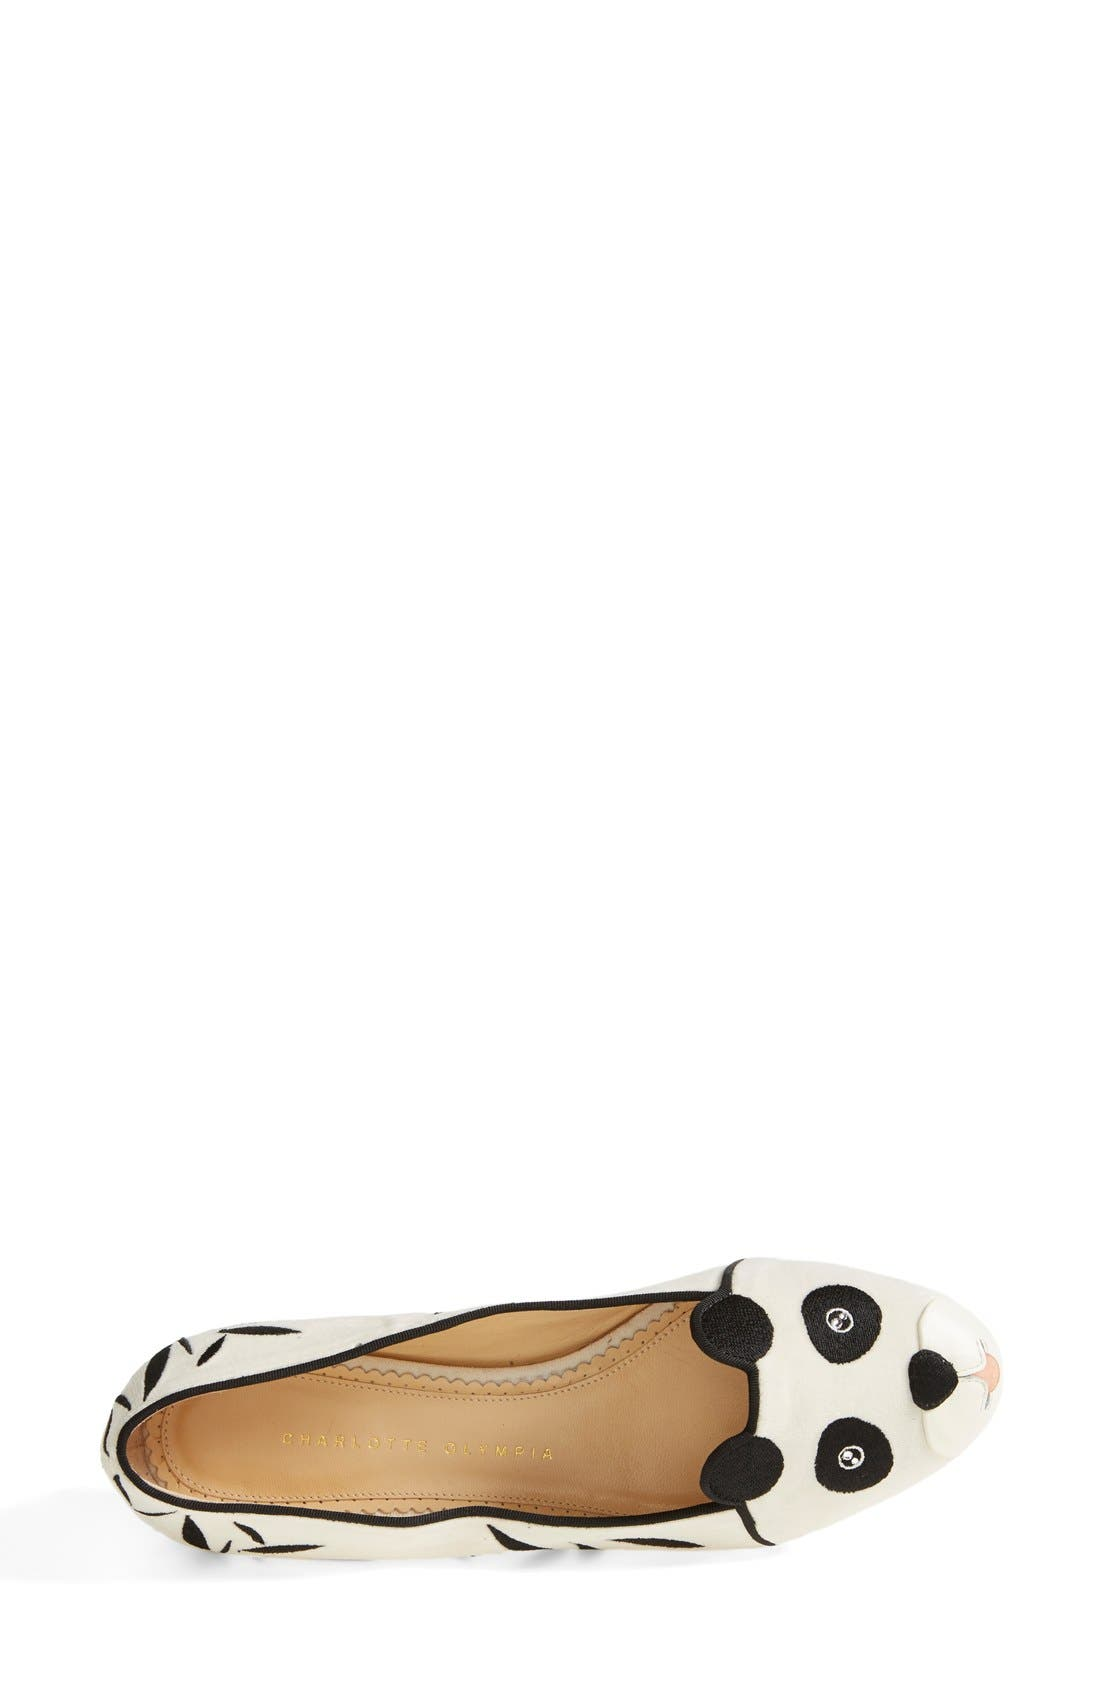 Alternate Image 3  - Charlotte Olympia 'Panda' Silk Velvet & Calfskin Leather Flat (Women)